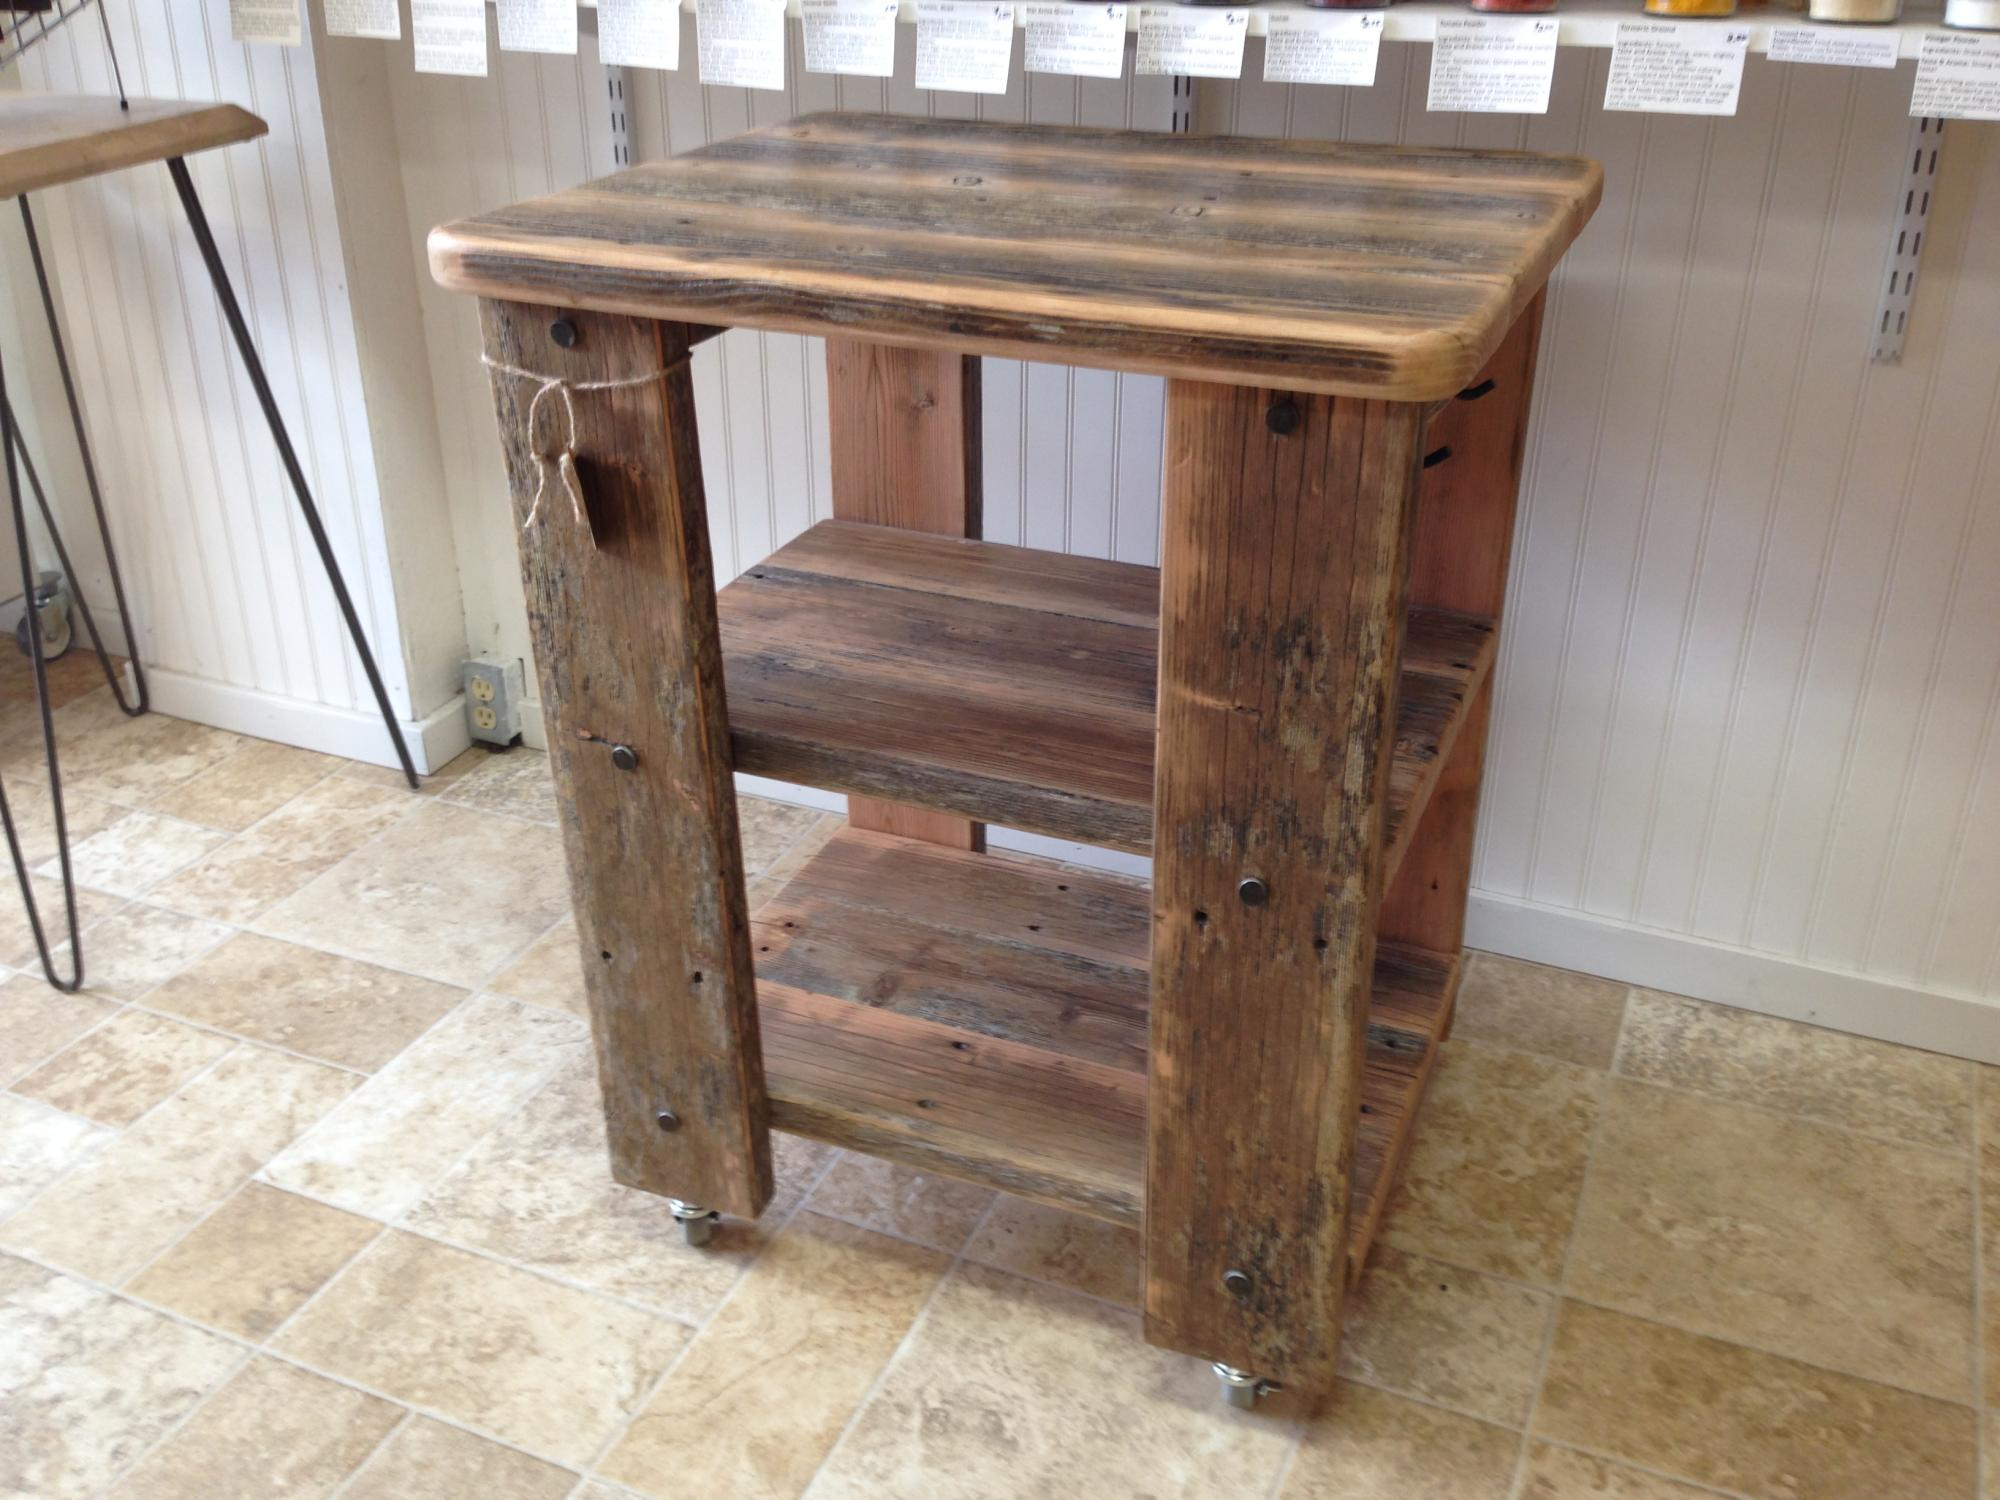 Douglas Fir river dock kitchen cart. $375